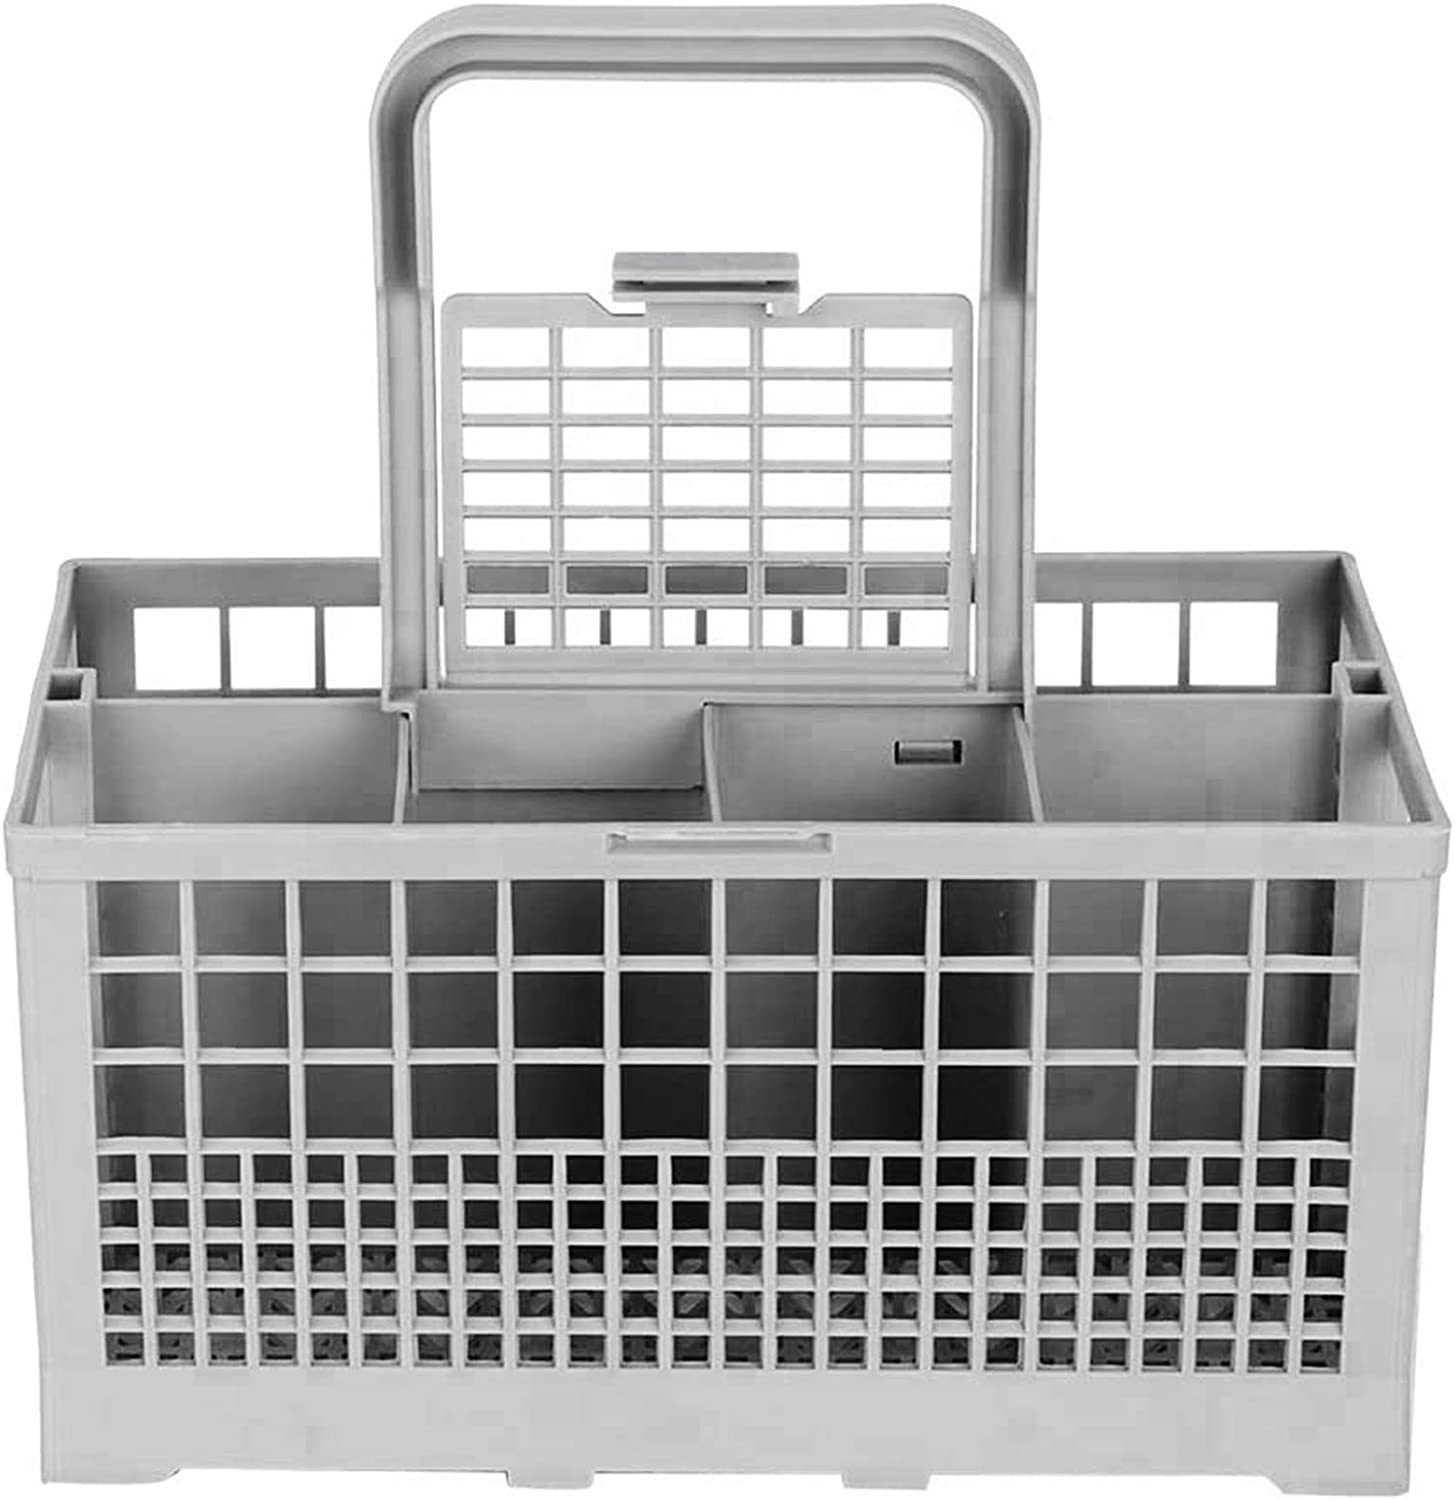 Universal Dishwasher Cutlery Basket, Replacement Dishwasher Basket Compatible with Kenmore, Whirlpool, Bosch, Maytag, KitchenAid, Maytag, Samsung, GE and more (Grey, 9.5